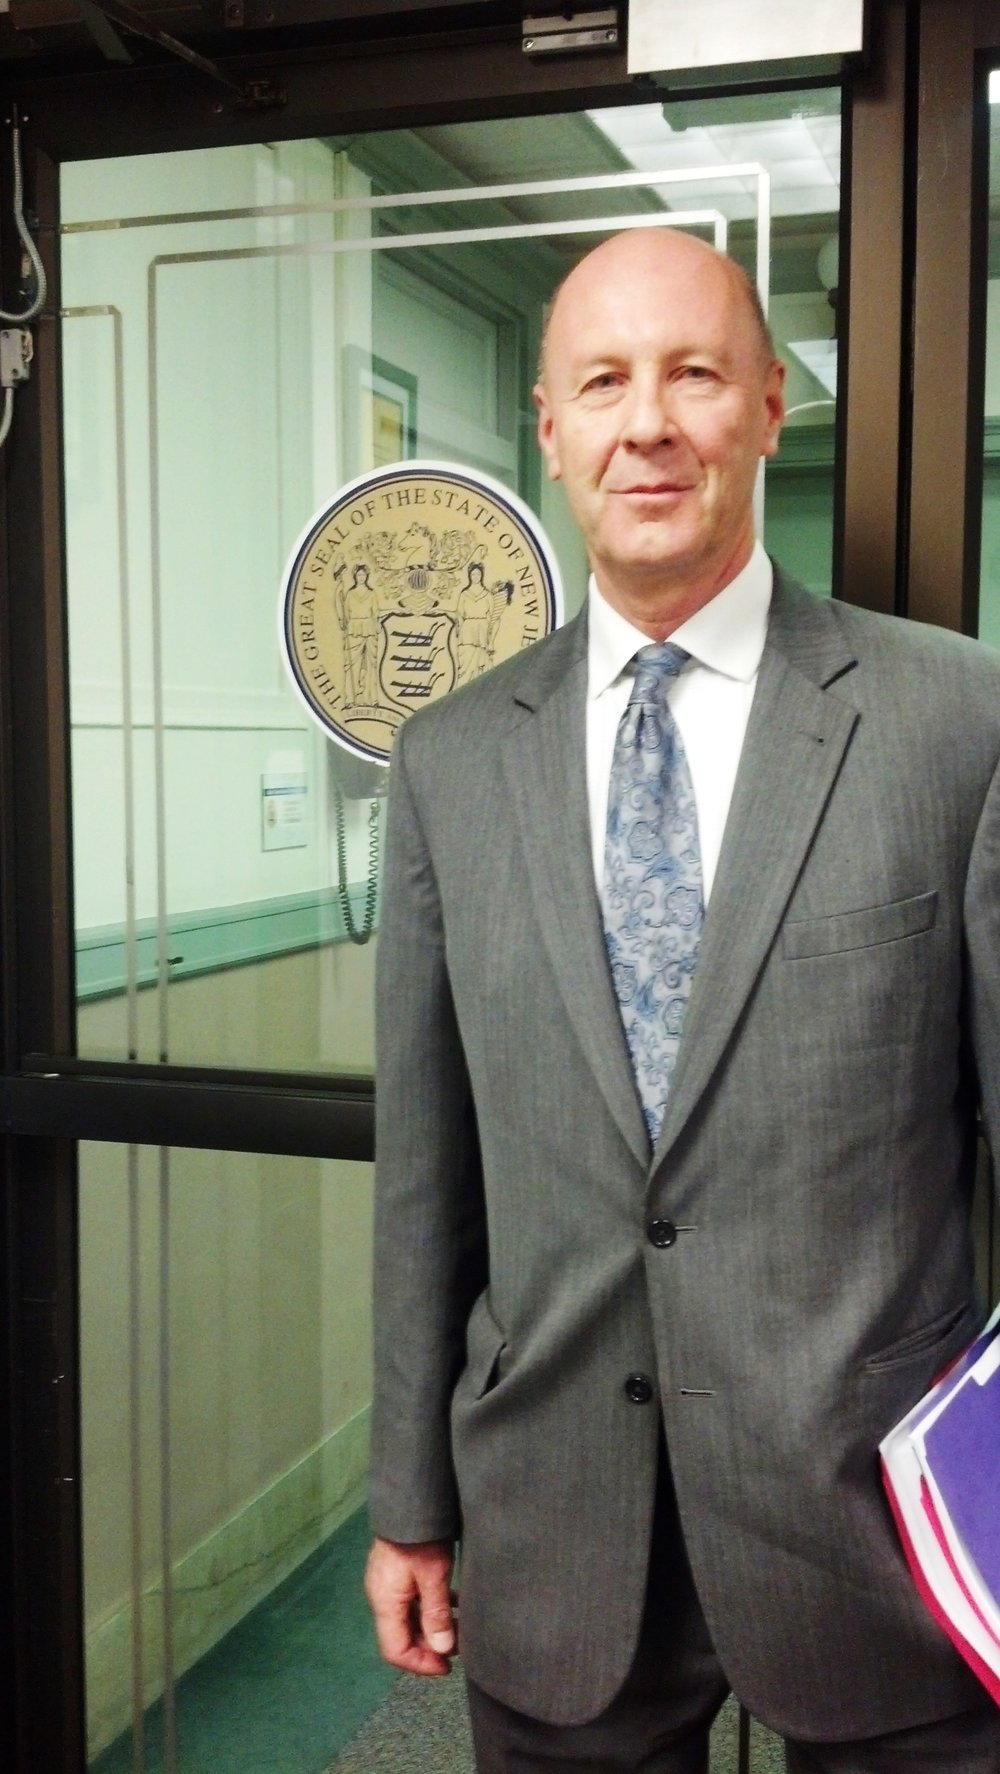 david meiswinkle preparing to submit a complaint with the new jersey state commission for investigations, concerning the nexus of jurisdiction for 9-11 in new jersey